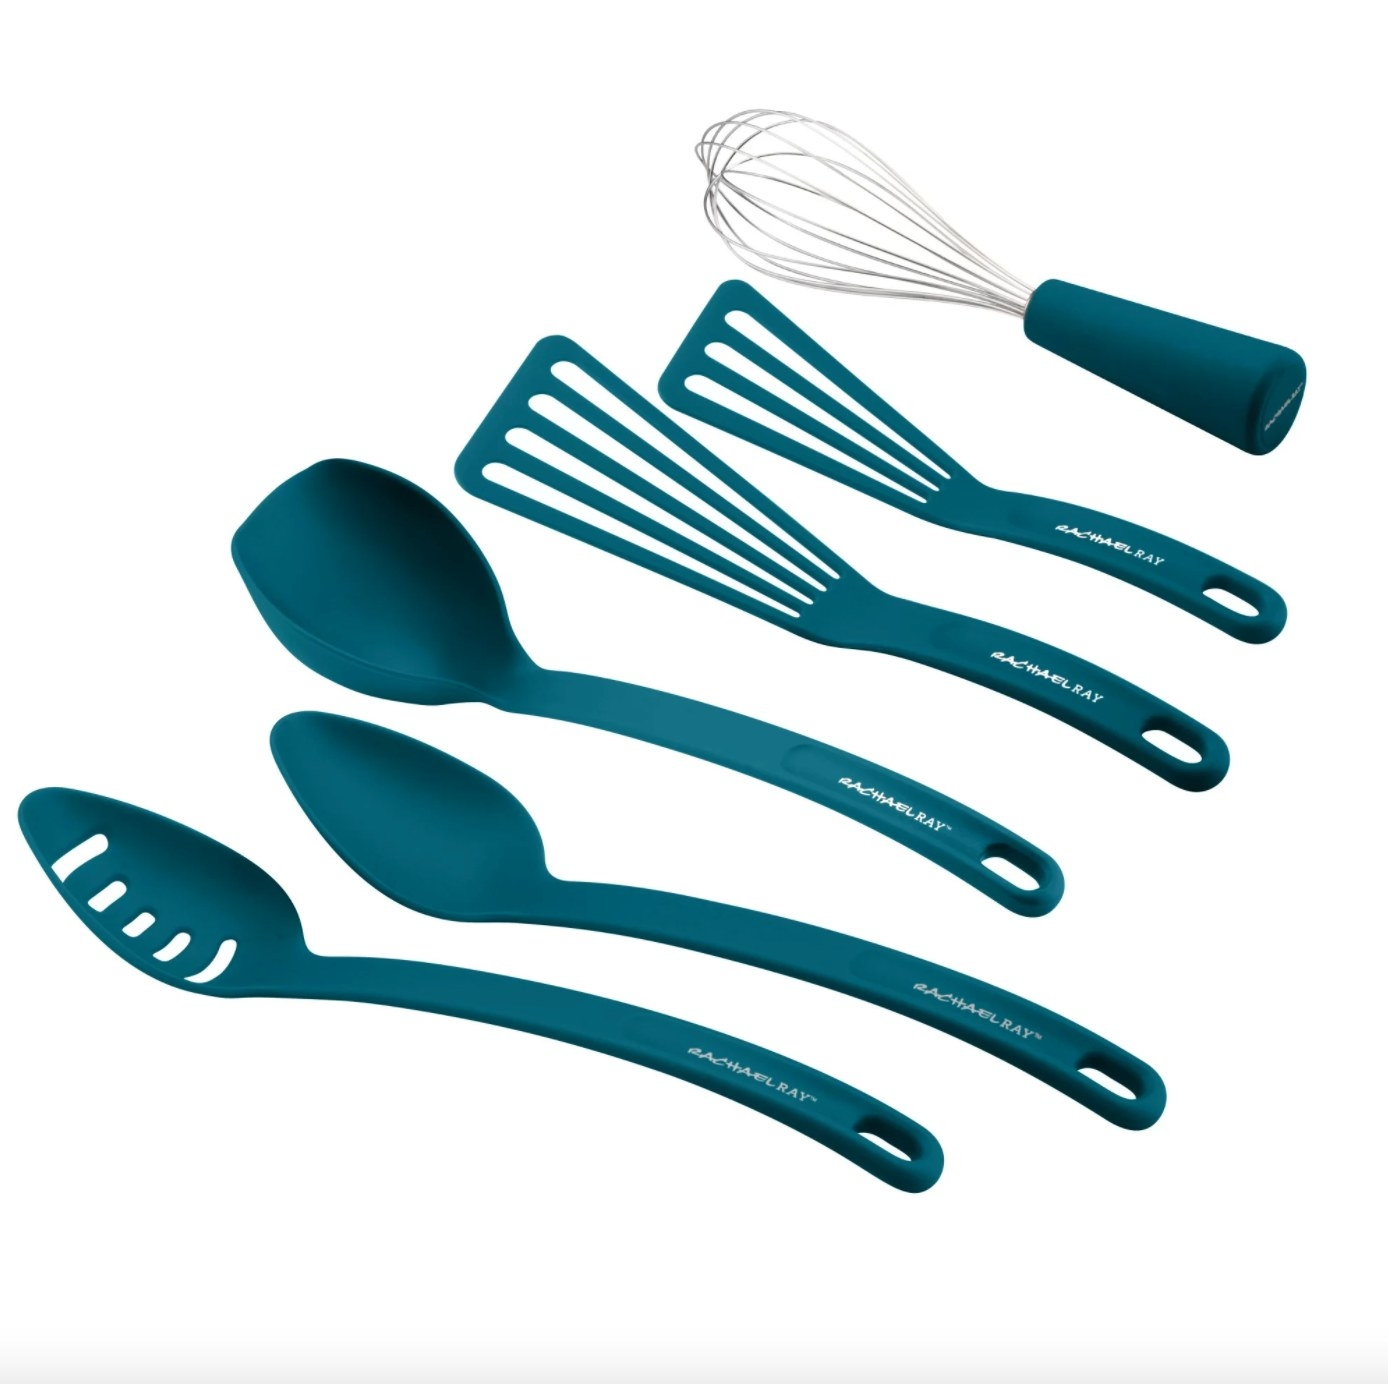 The six-piece kitchen set of gadgets in marine blue